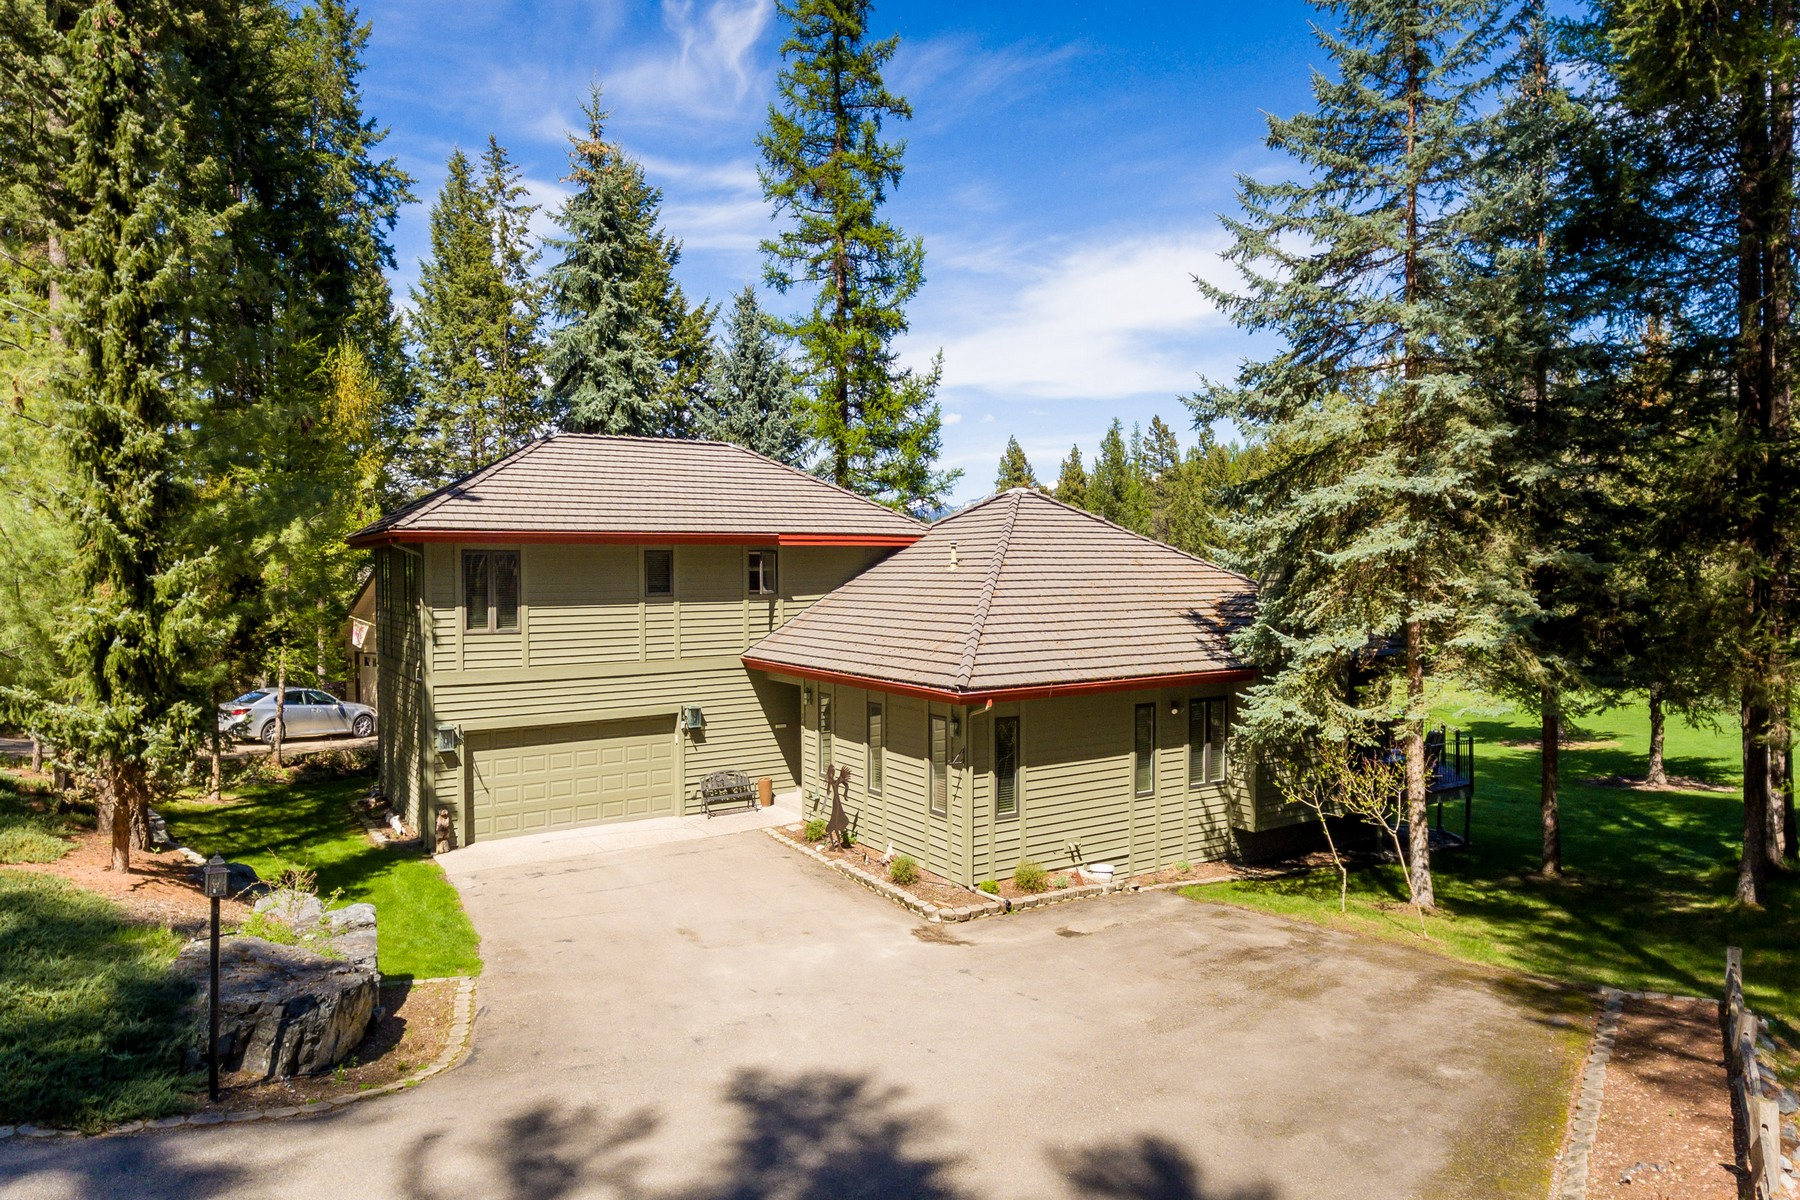 Additional photo for property listing at 163 Golf Terrace, Bigfork, MT 59911 163  Golf Terr Bigfork, Montana 59911 United States